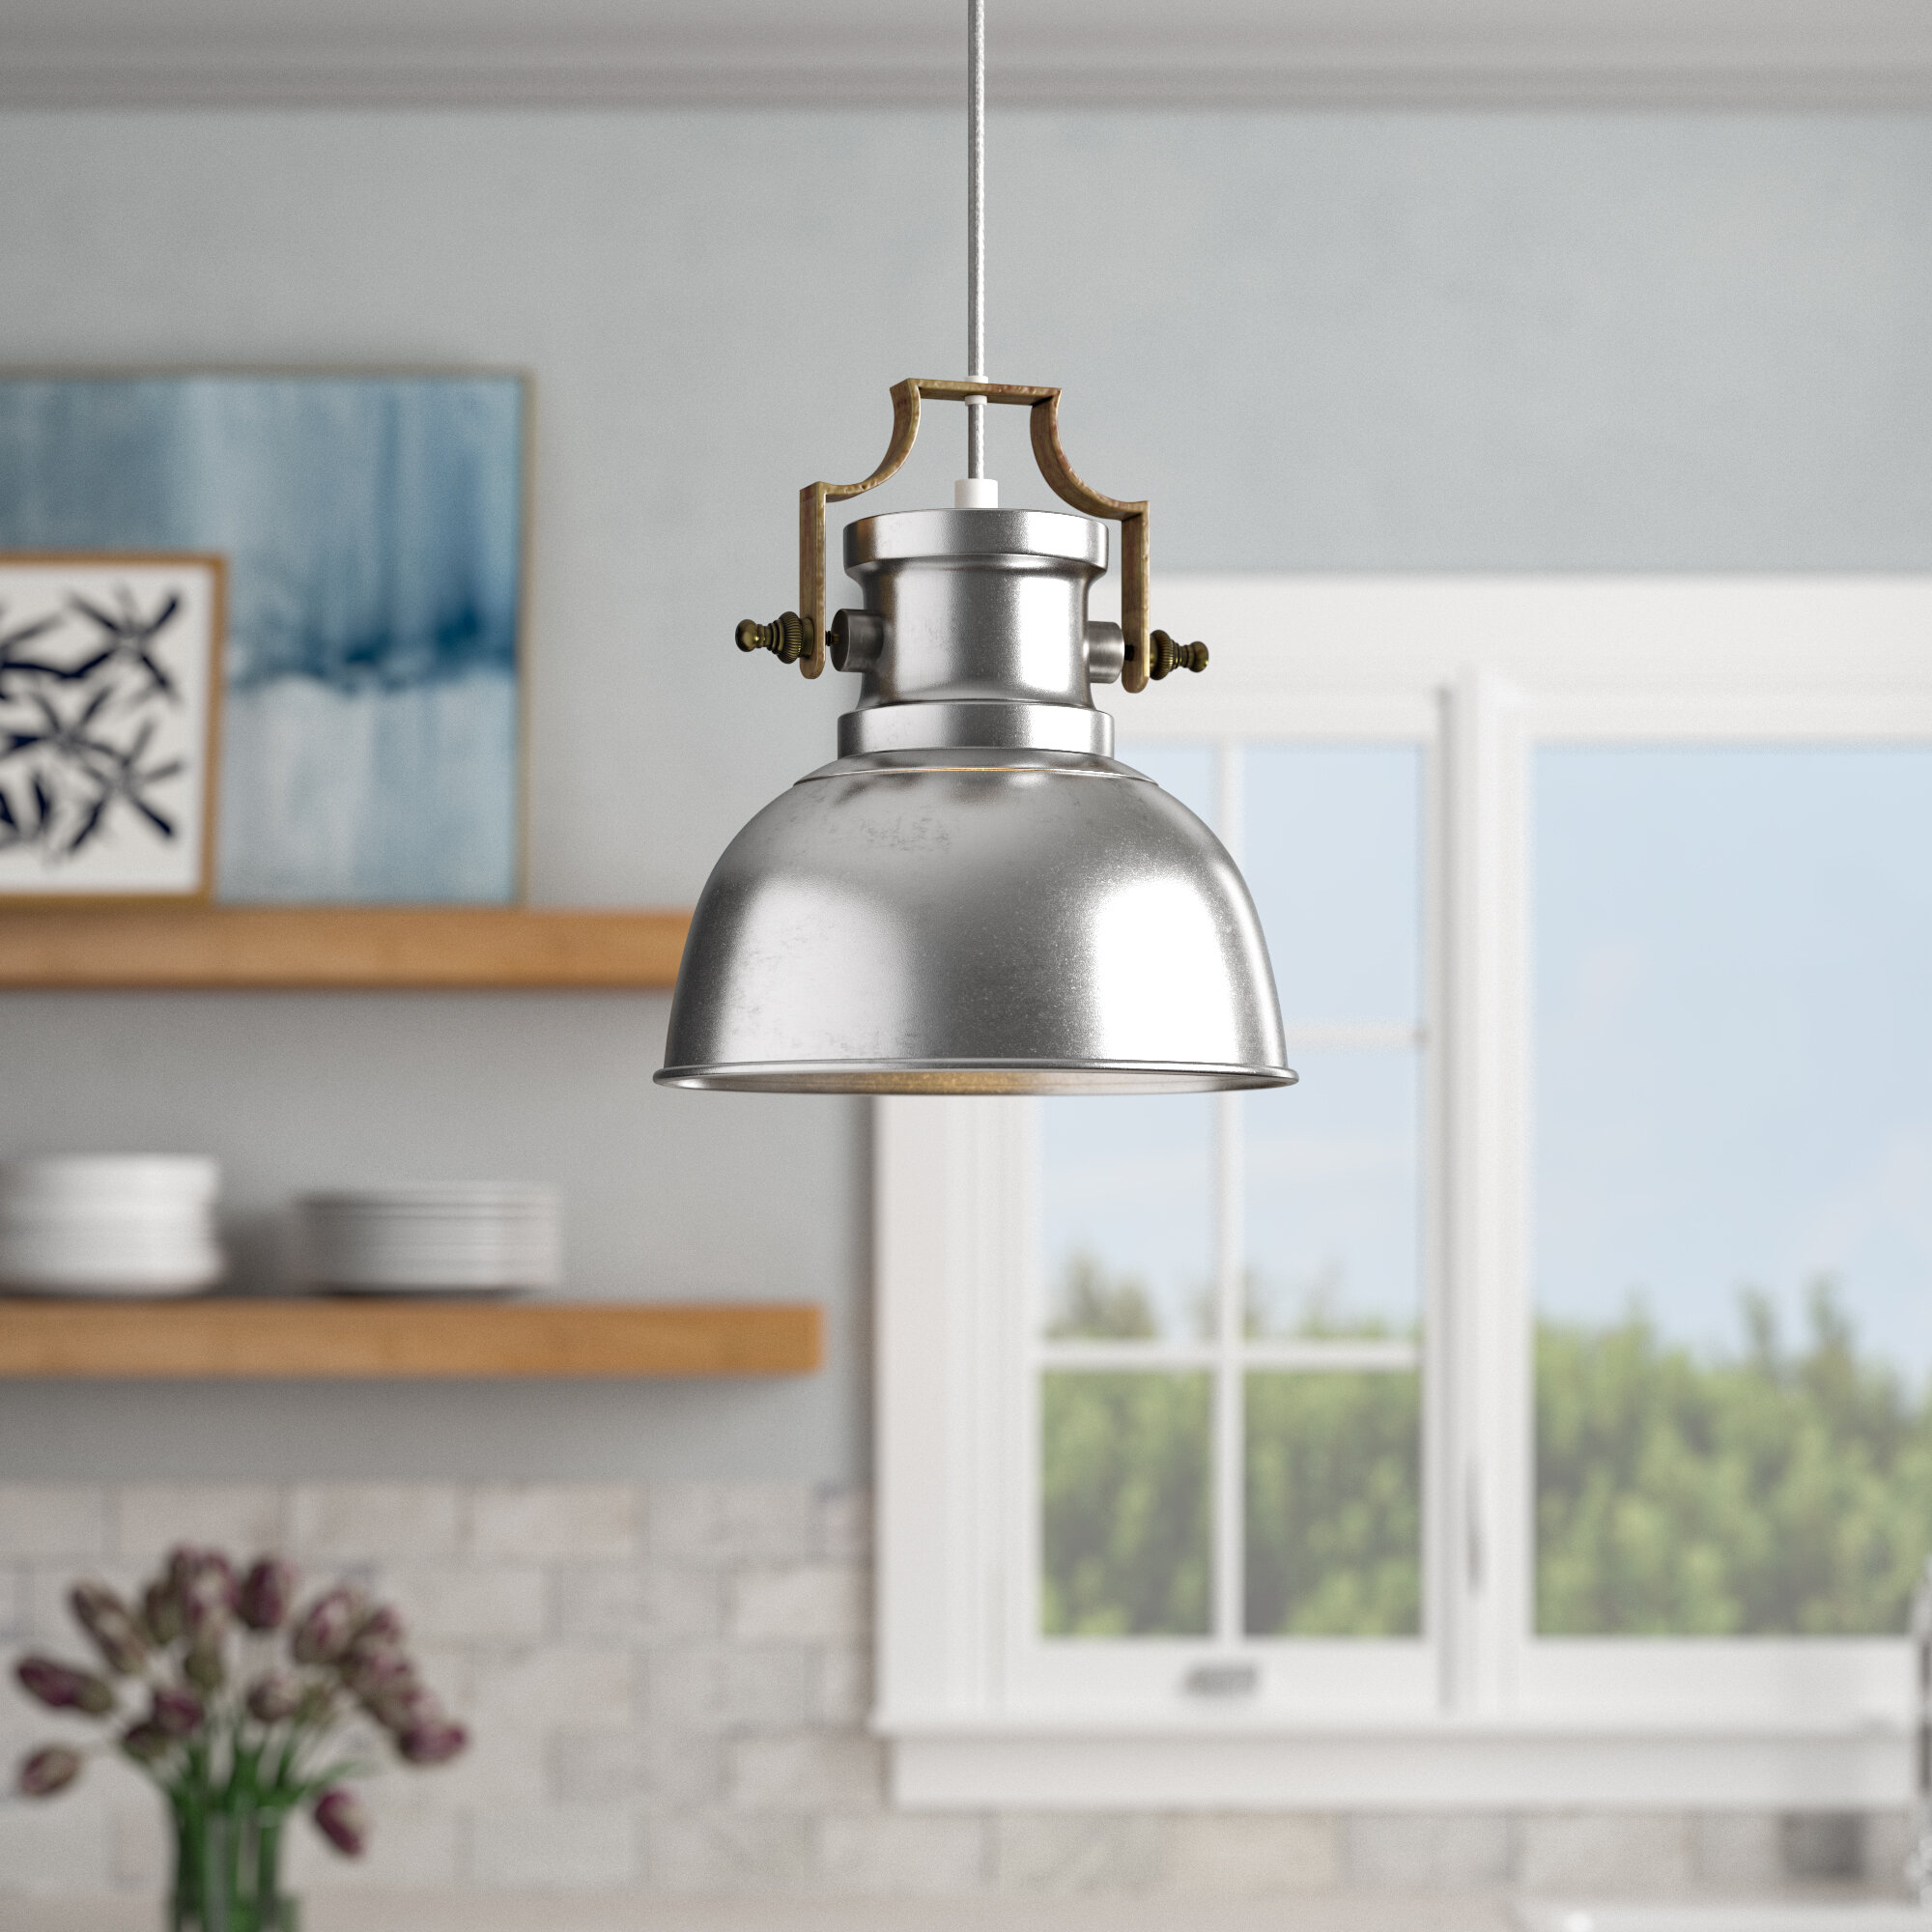 Jules 1 Light Single Dome Pendant With Regard To Priston 1 Light Single Dome Pendants (View 14 of 30)